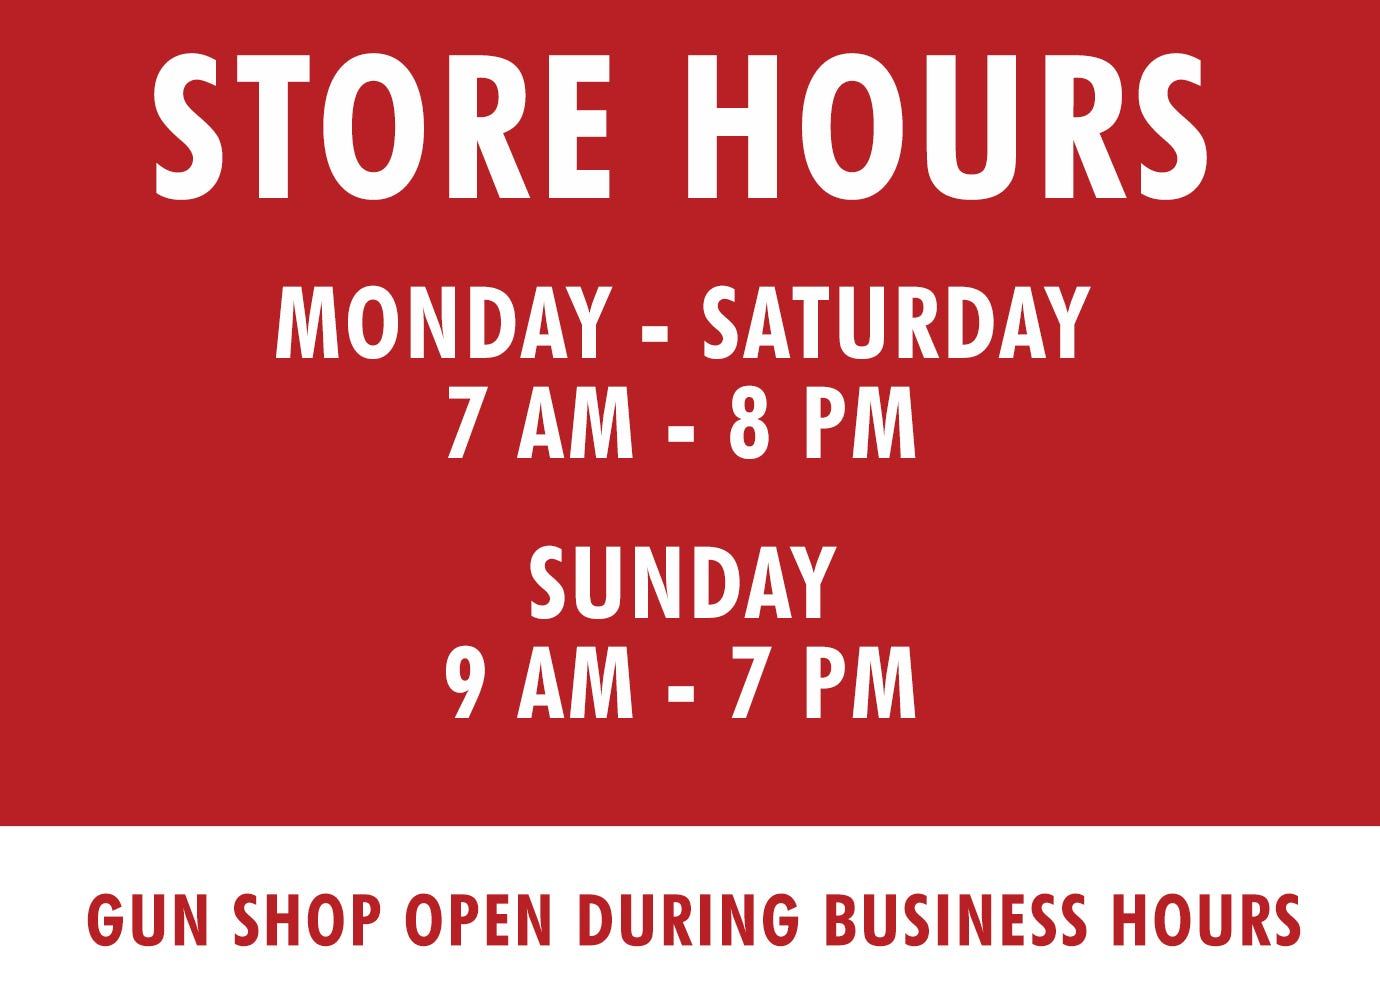 Store Hours - Monday thru Saturday 7am to 8pm - Sunday 9am to 7pm